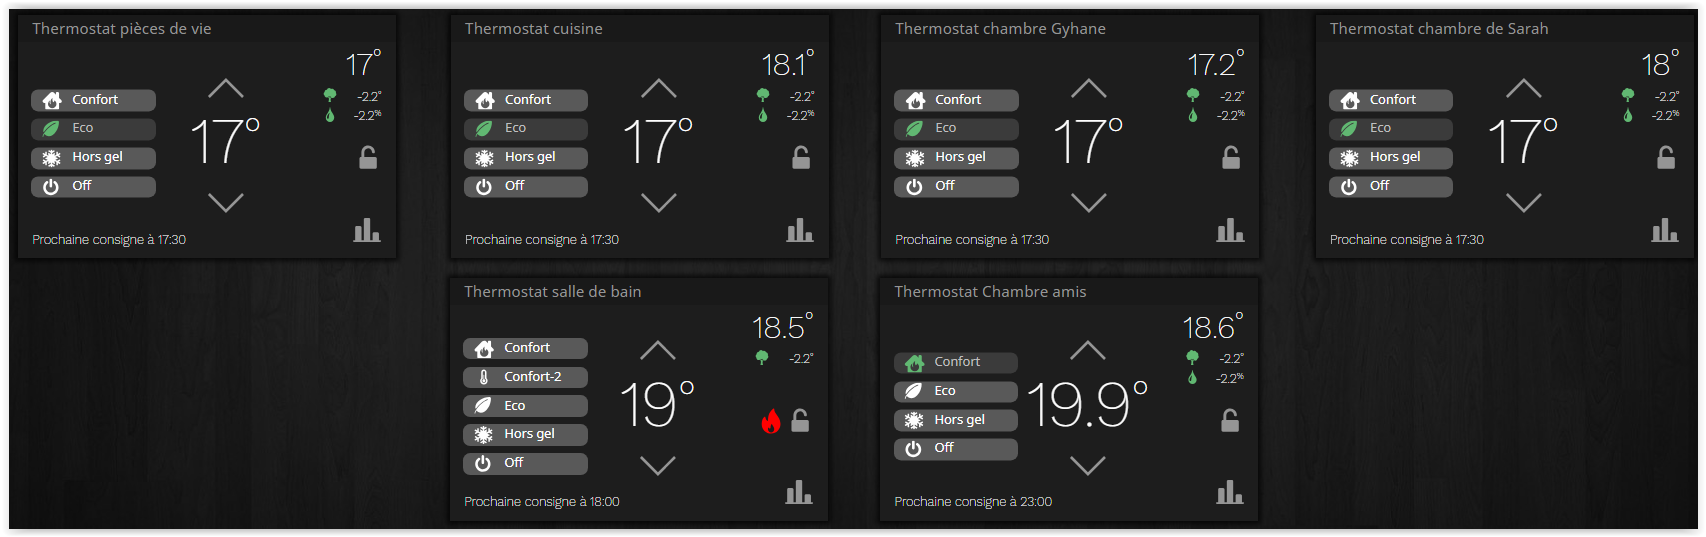 thermostat alternateview.PNG